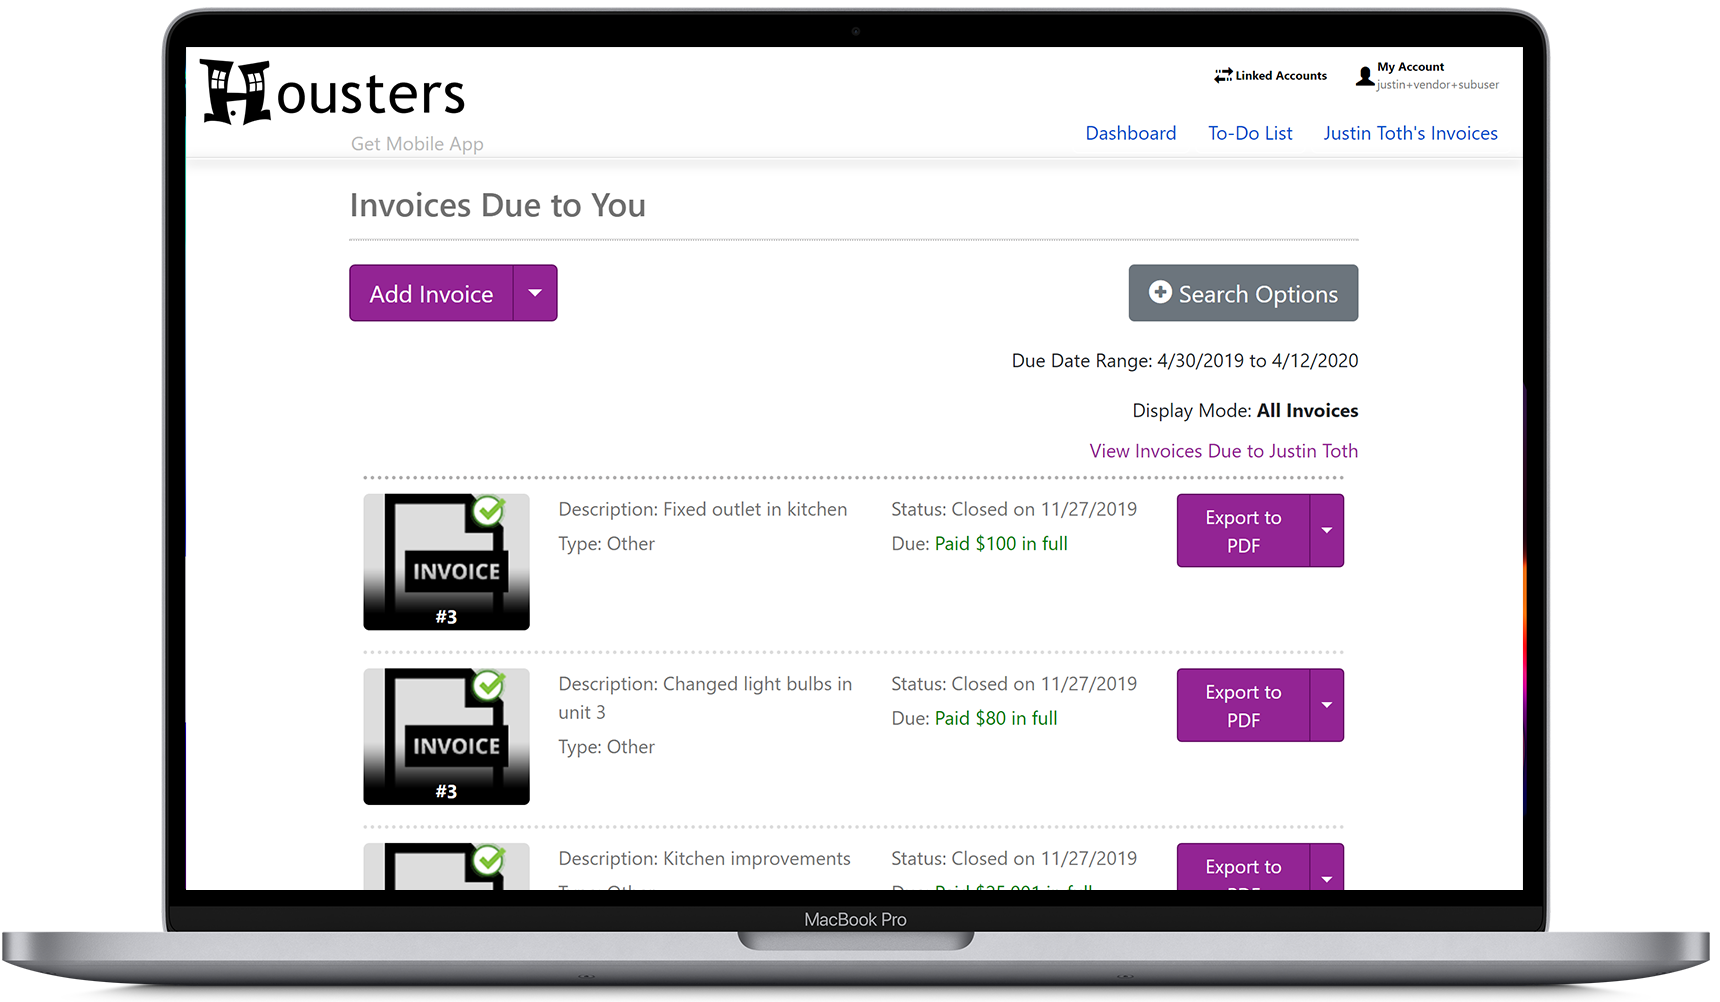 View invoices due to you for work performed for client landlords and property managers on the contractor portal